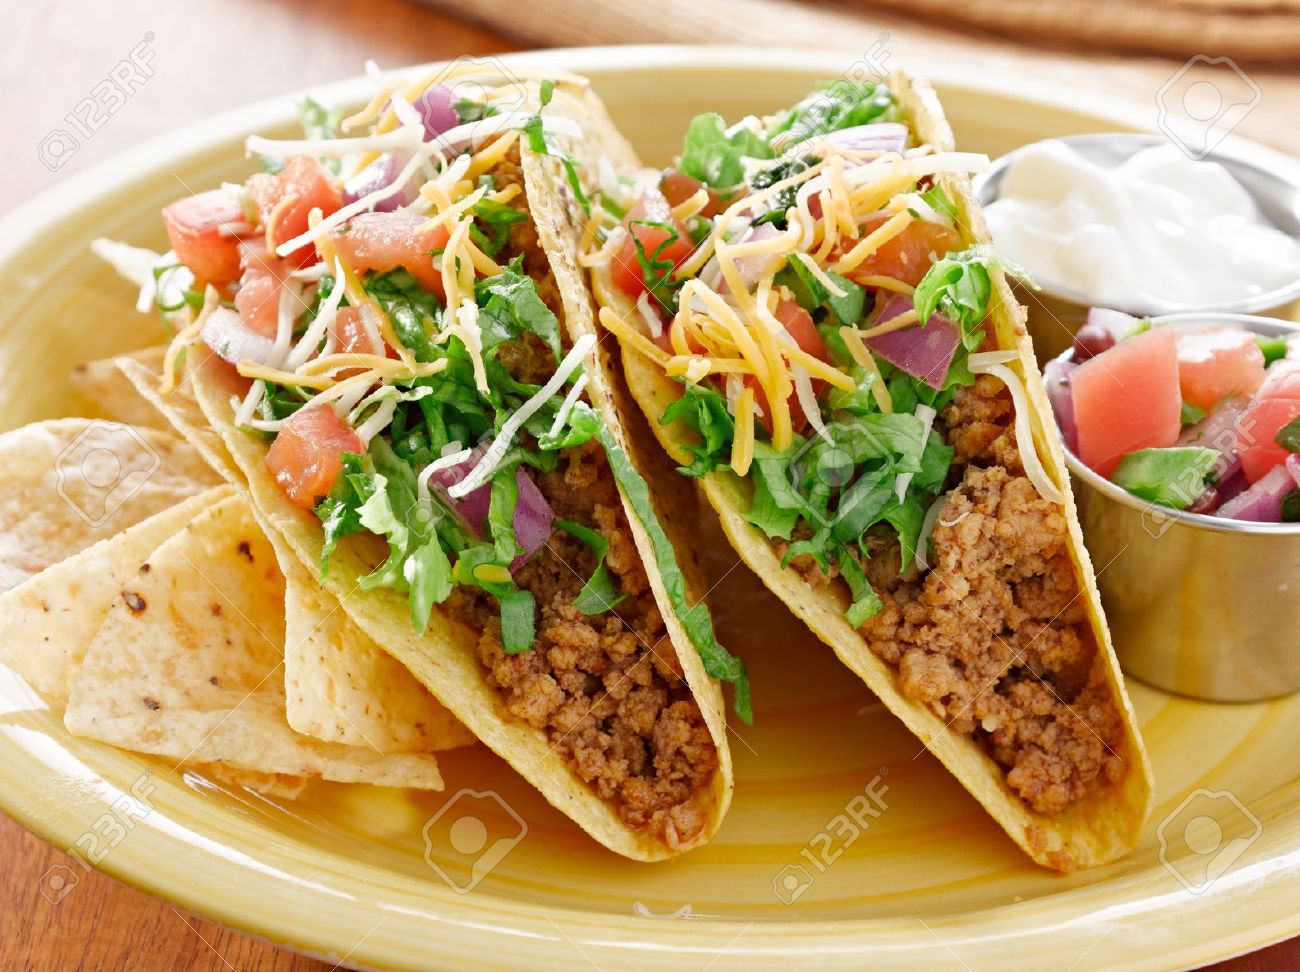 Tacos on a platter with tortillas - mexican food Stock Photo - 14941198